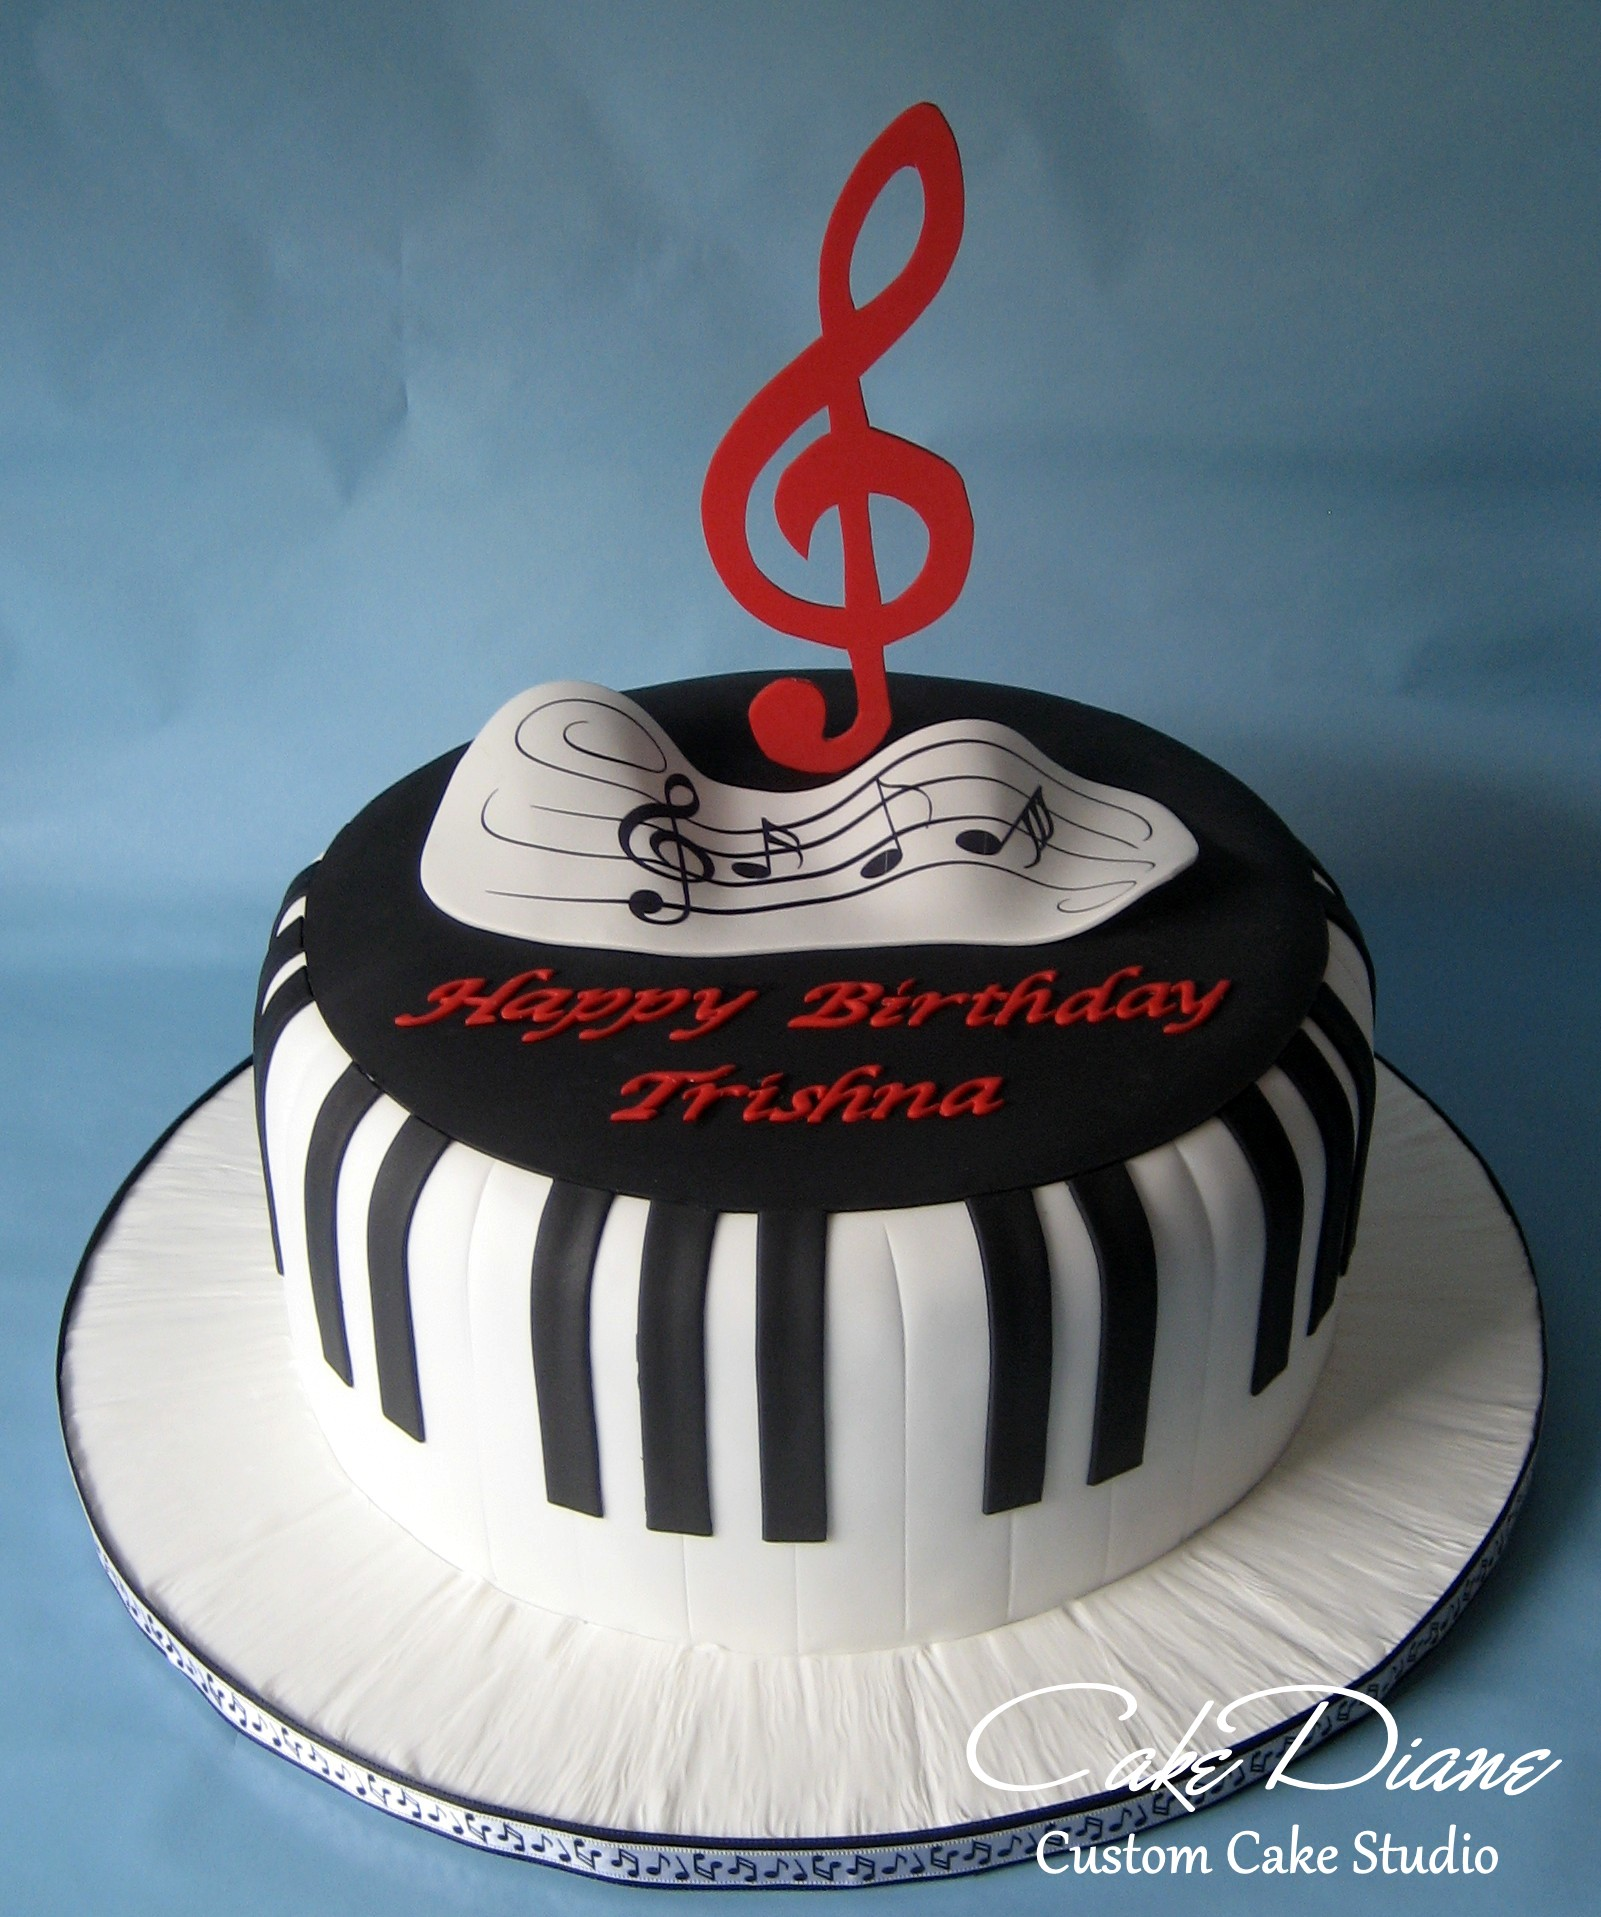 Piano keys cake watermark